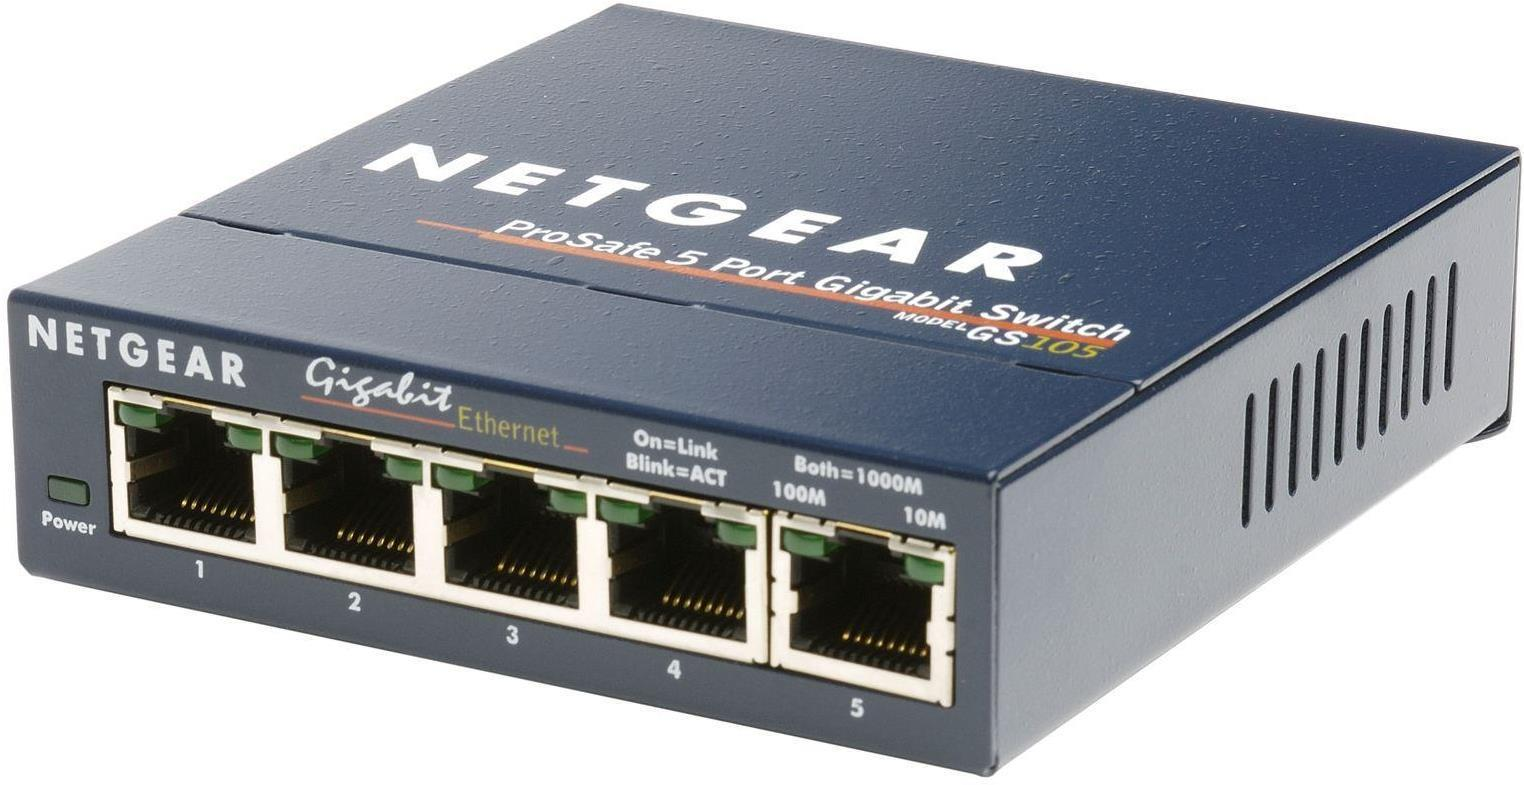 Netgear ProSafe GS105 Ethernet Network Gigabit Switch